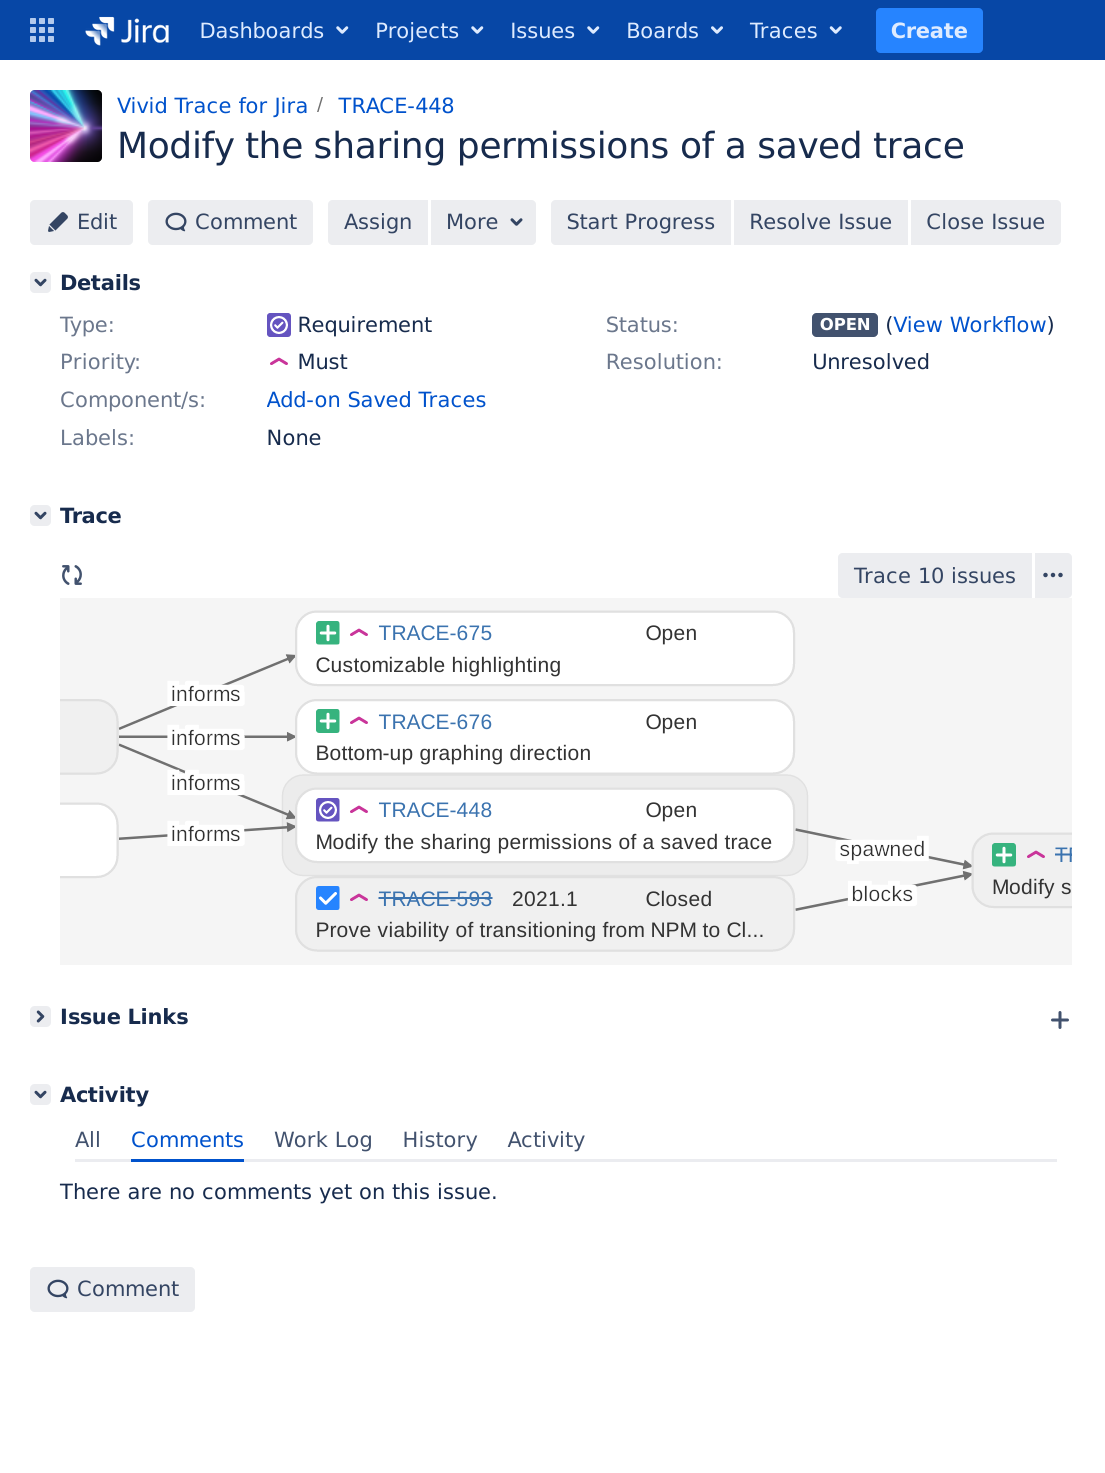 Vivid Trace for Jira - Jira issue dependency graphs - Trace and